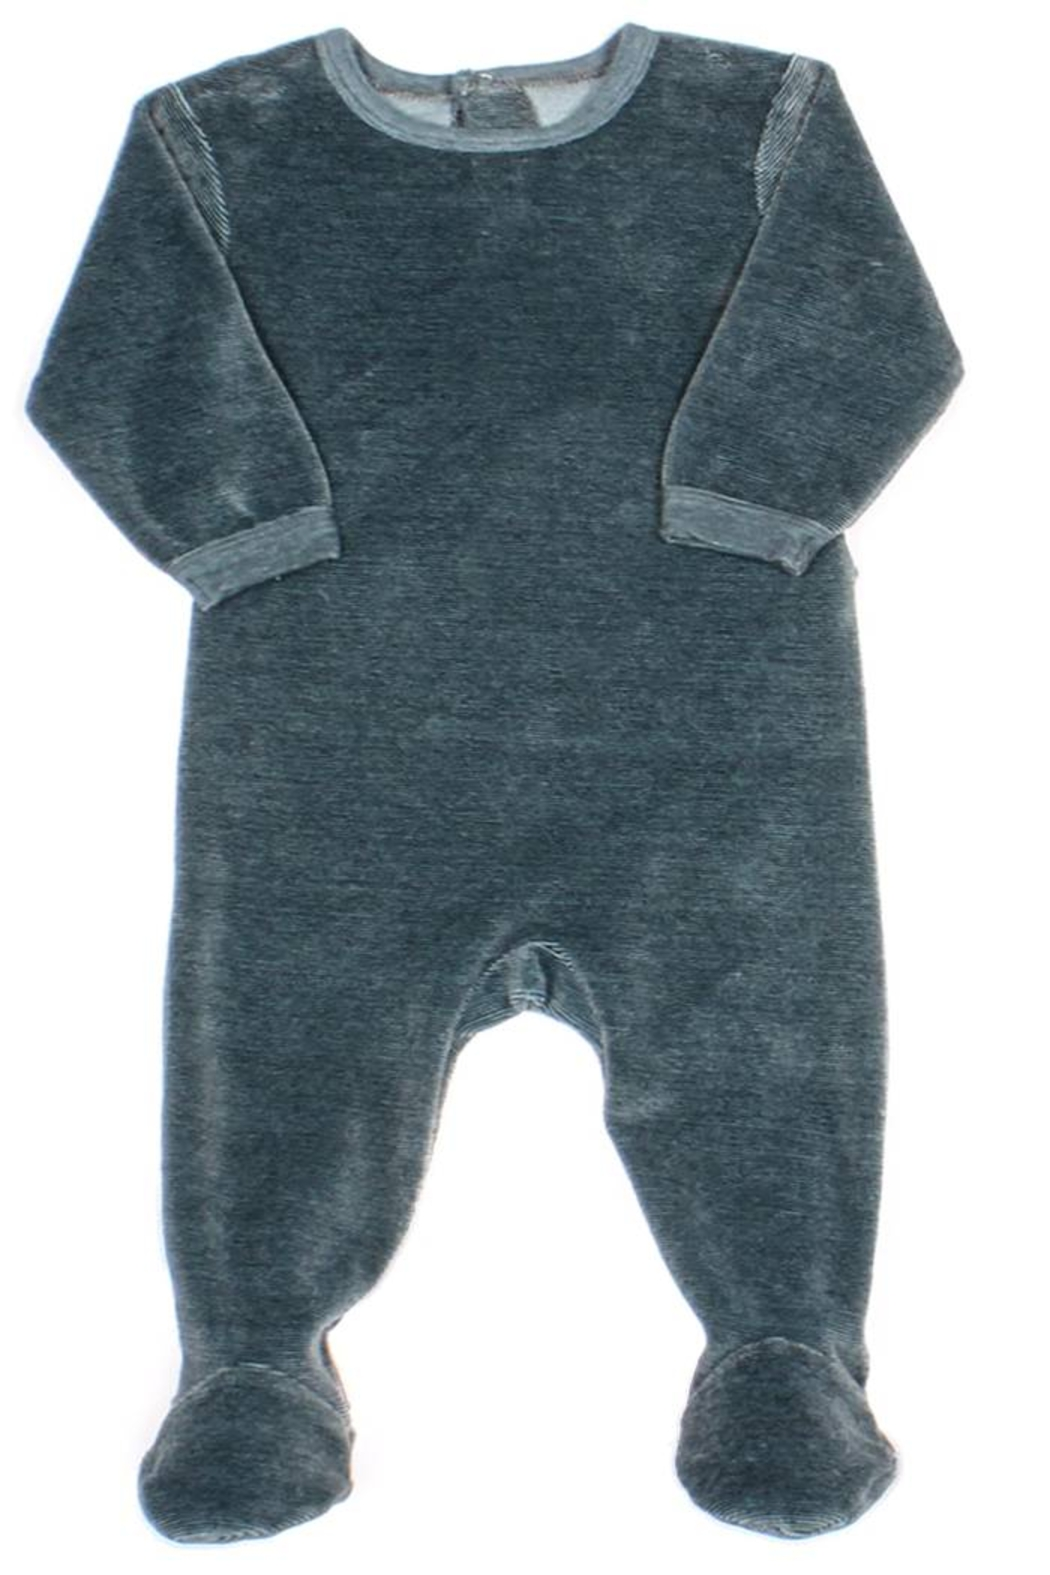 Coccoli Cotton Knitted Velour Footie Romper For New Born Baby Girls - Front Cropped Image